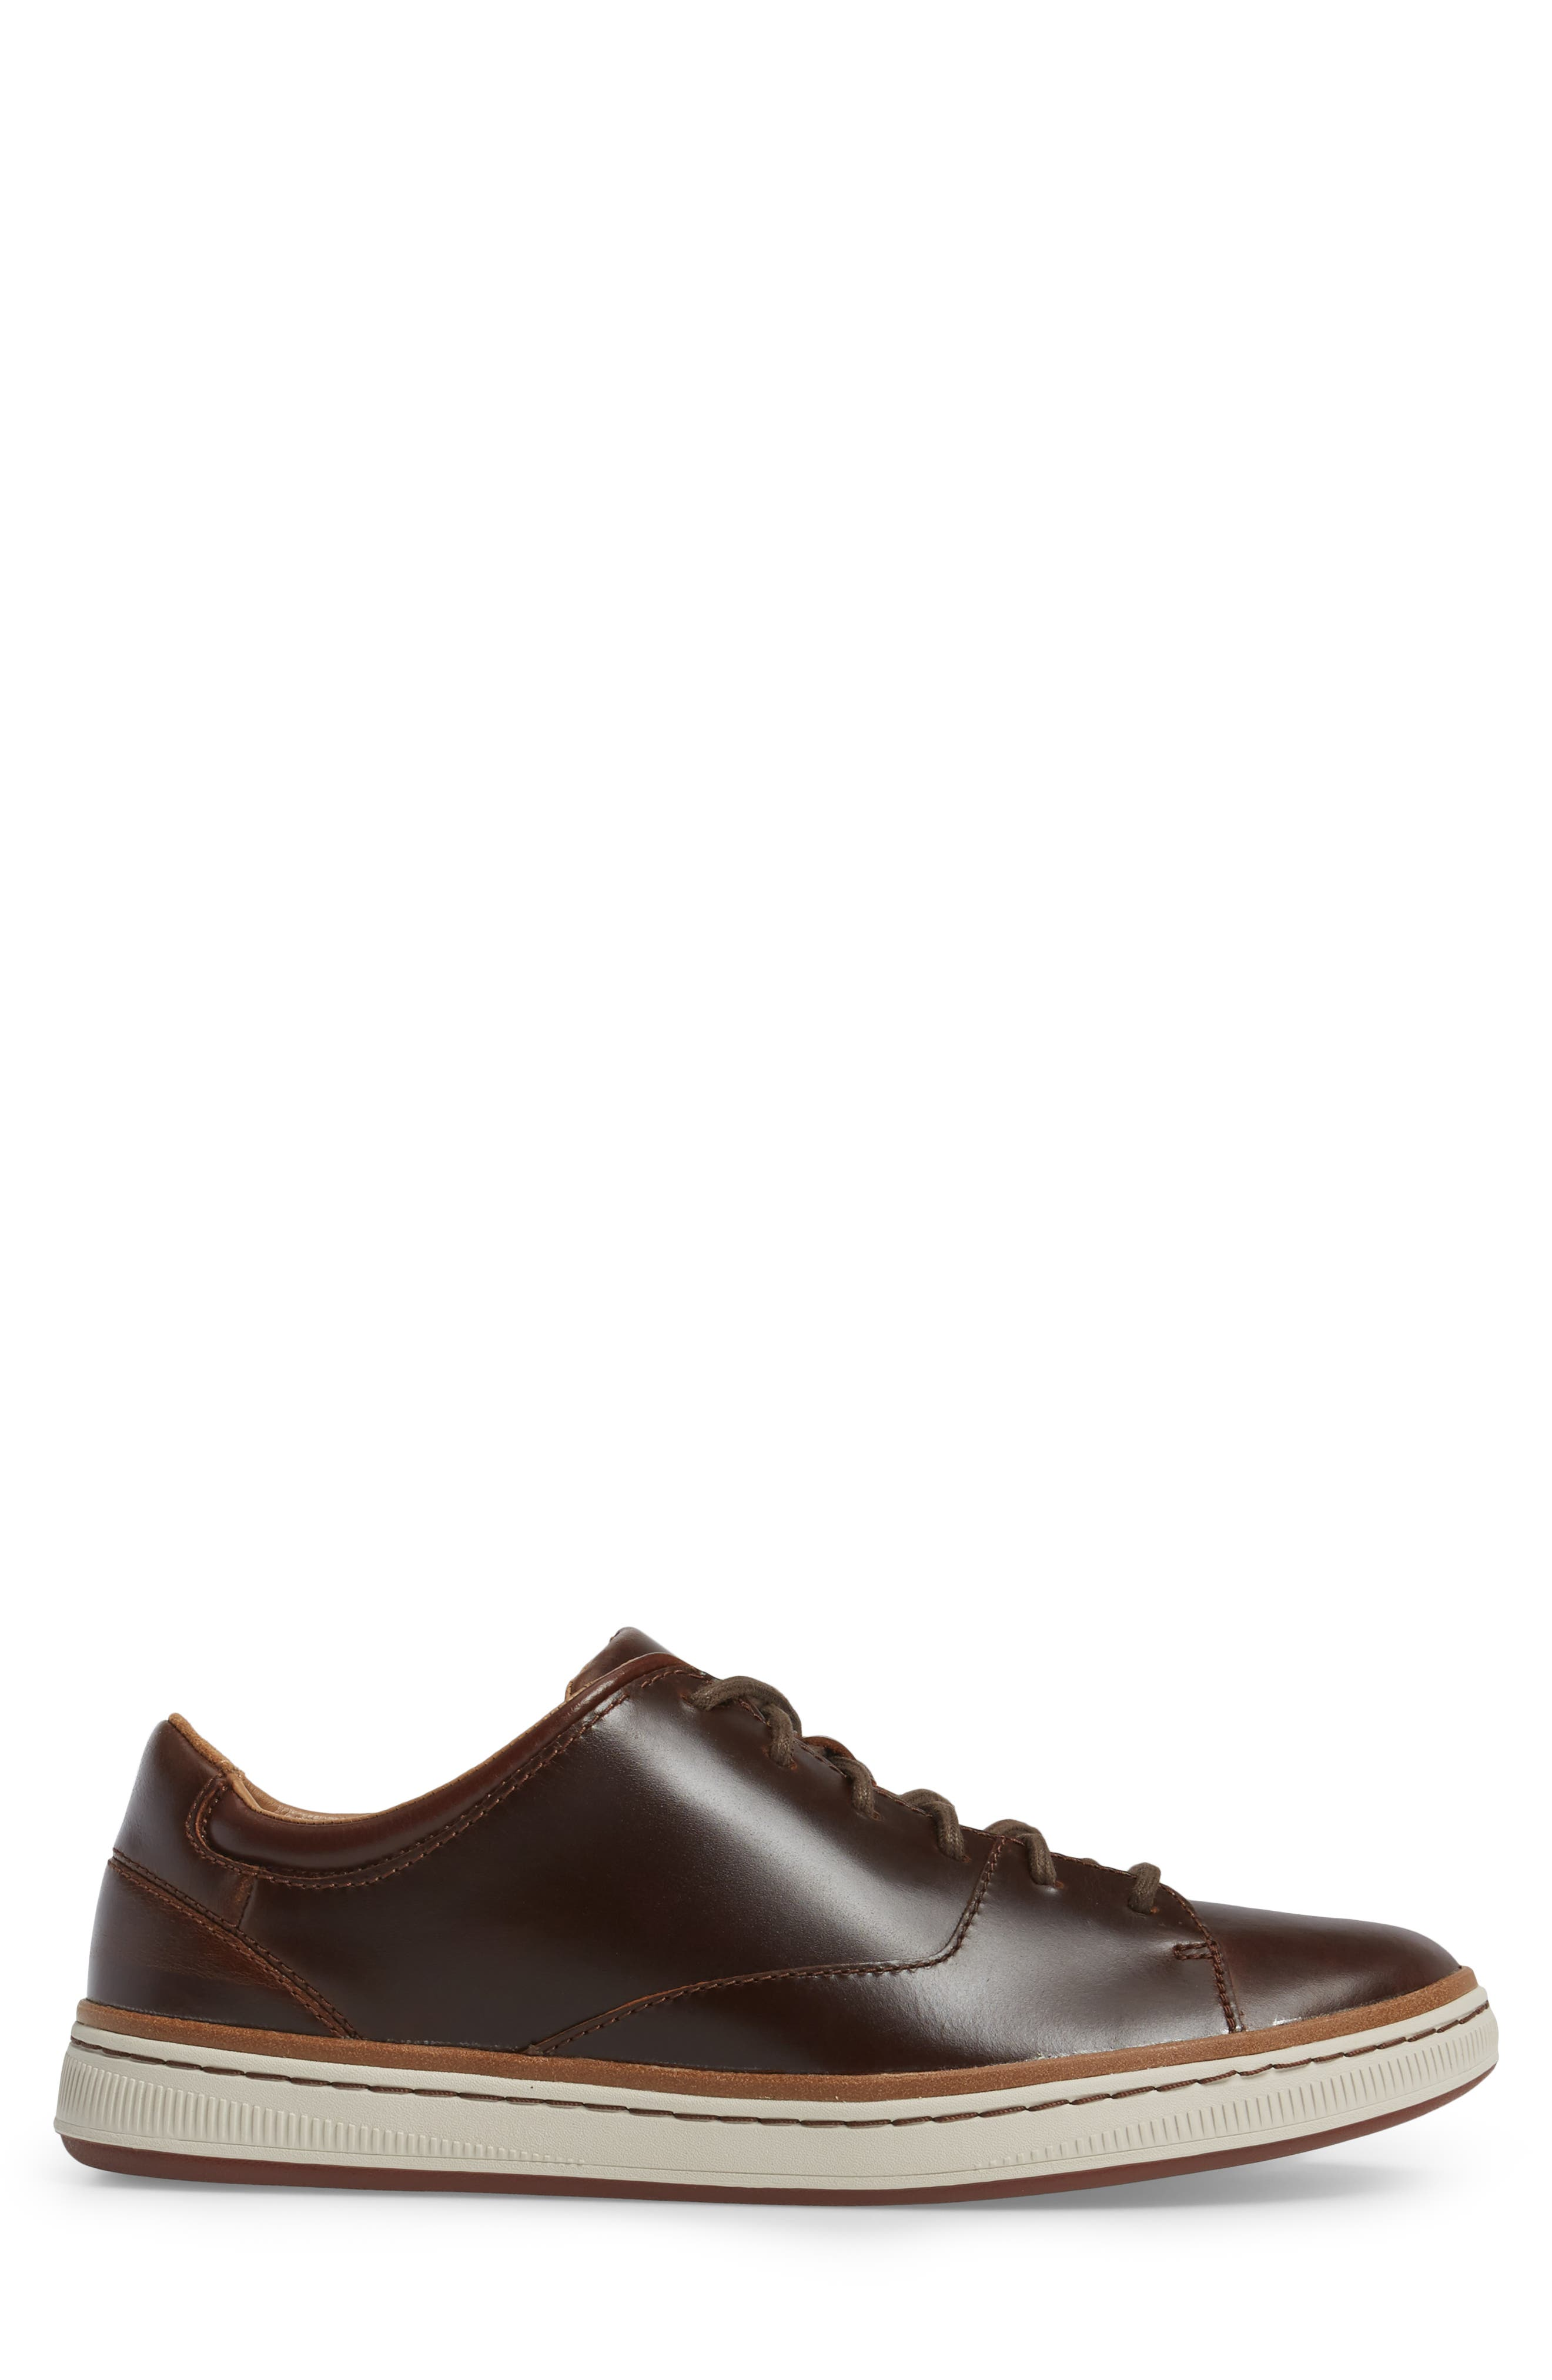 CLARKS<SUP>®</SUP>, Norsen Lace Sneaker, Alternate thumbnail 3, color, DARK TAN LEATHER